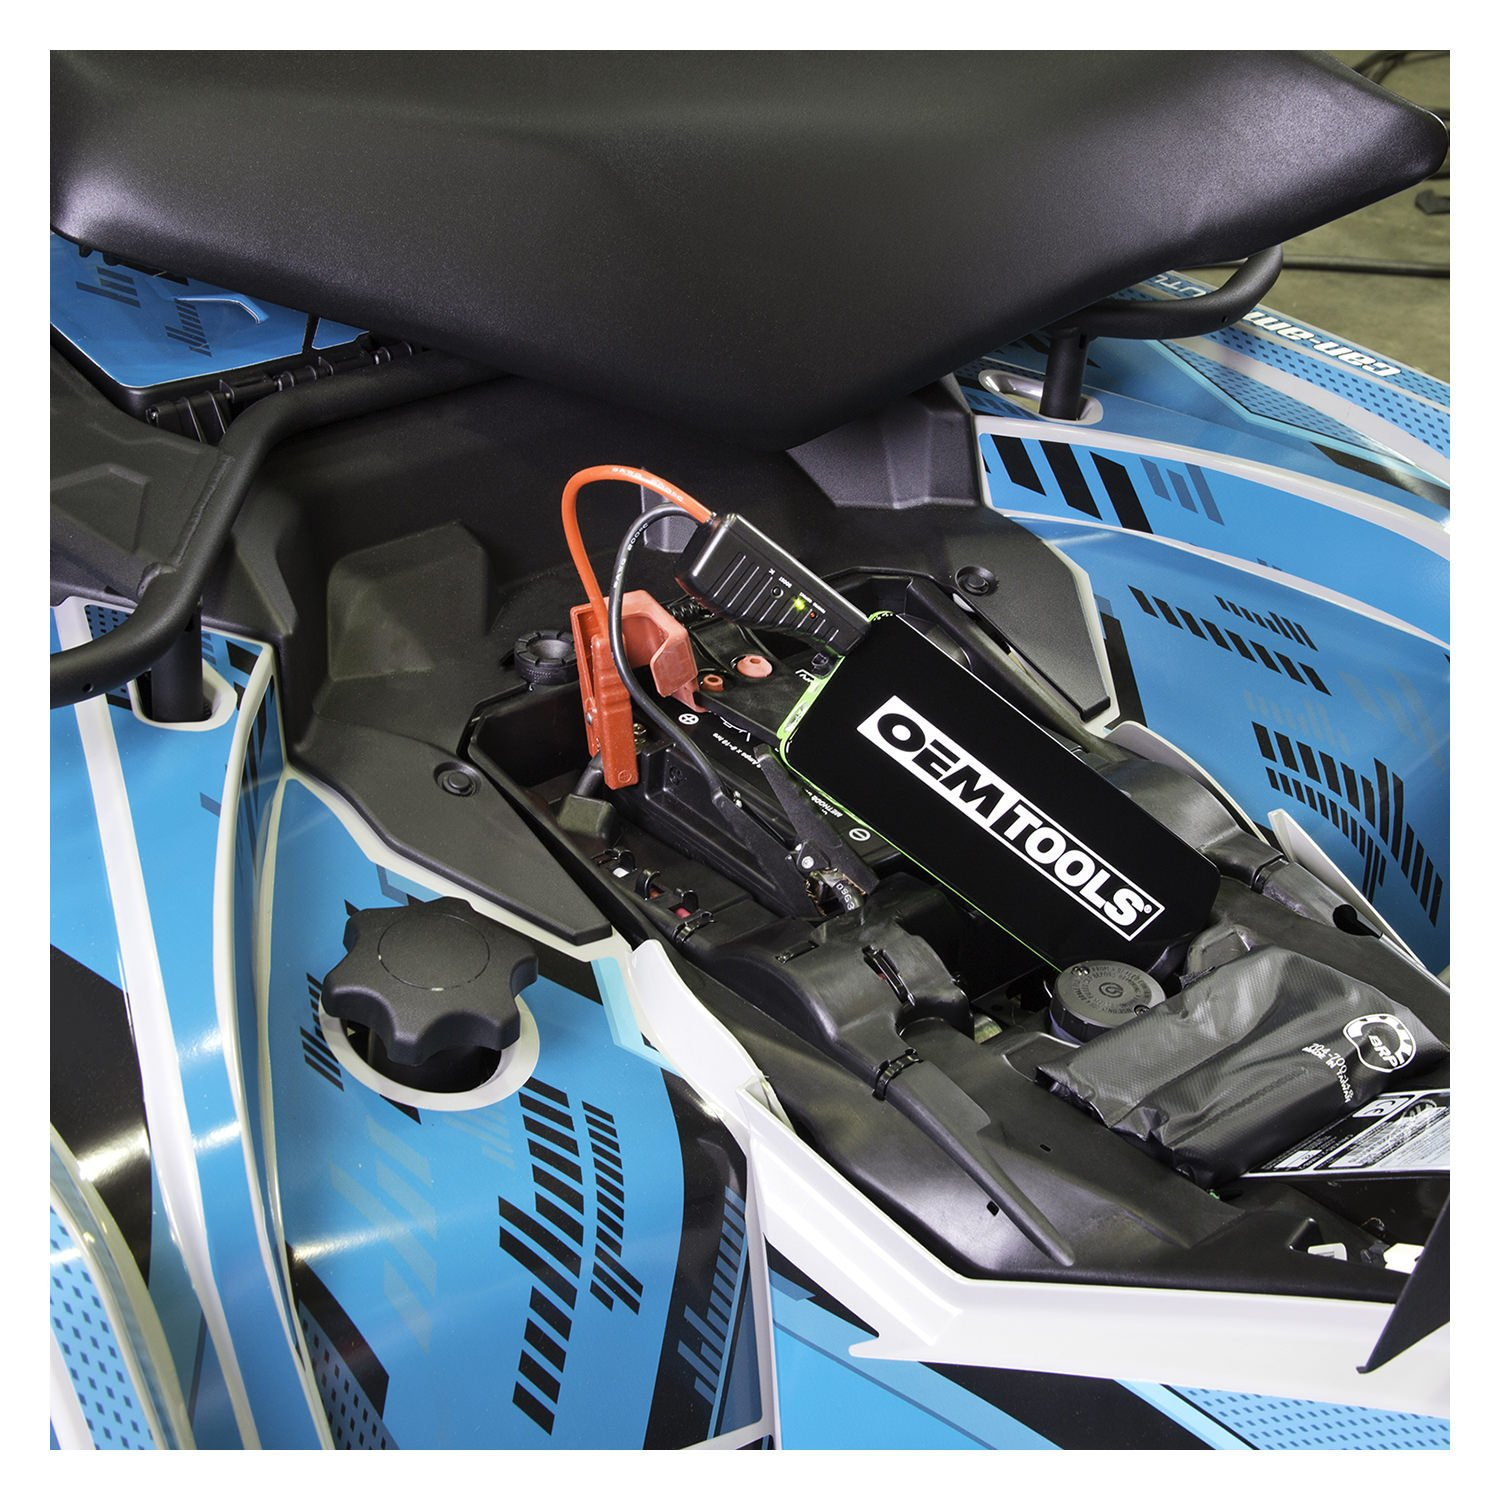 OEMTOOLS 24455 PPS-X Personal Power Source with Smart Jump Cables by OEMTOOLS (Image #10)